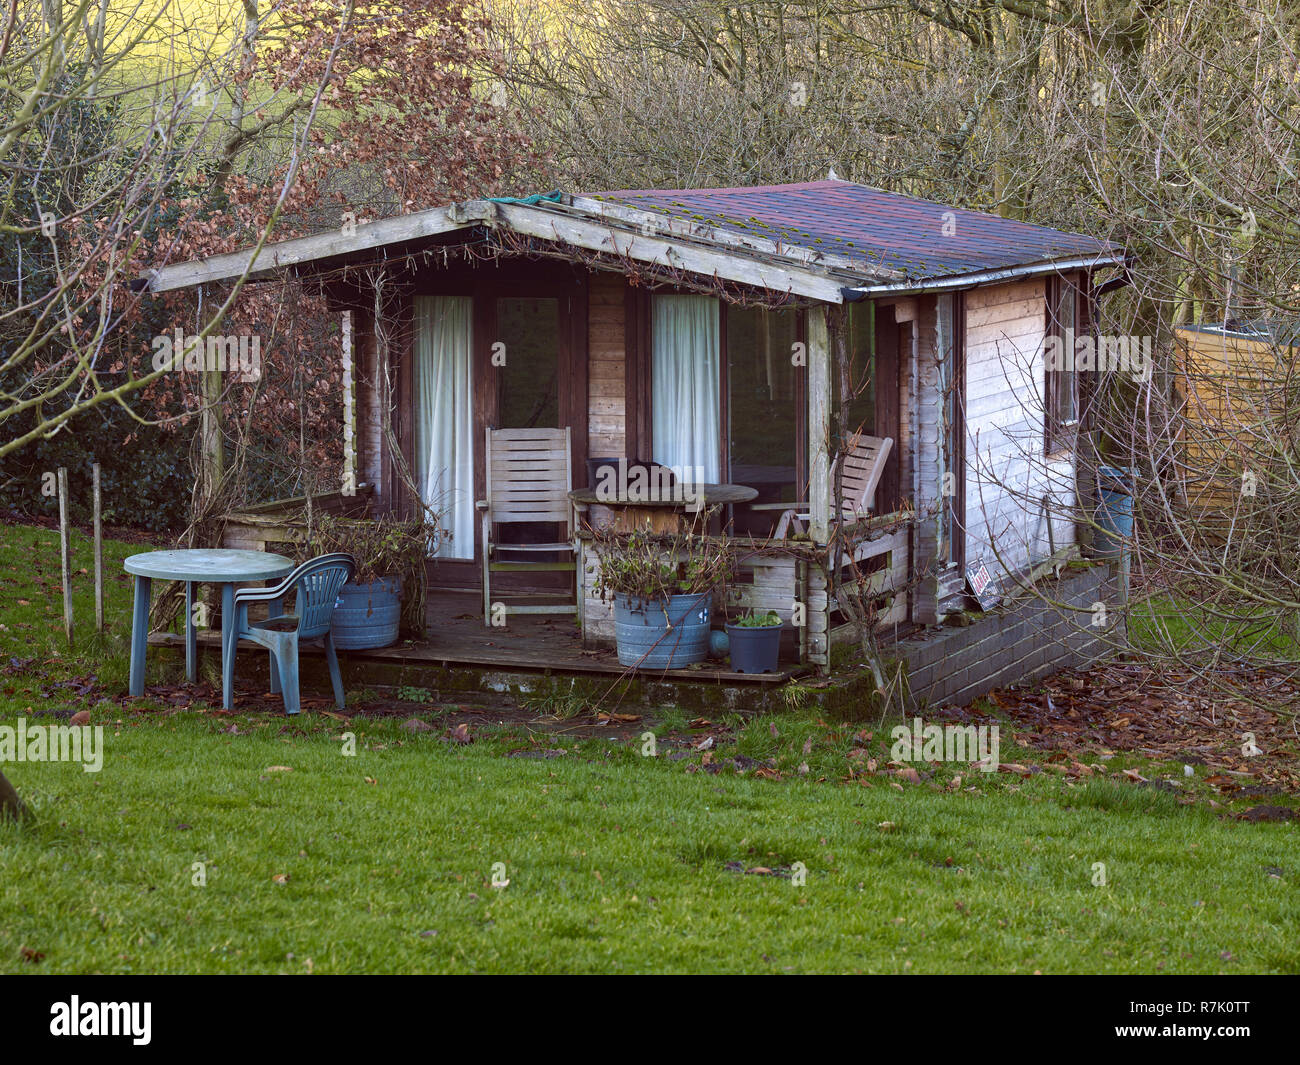 Bewerley, Nidderdale, North Yorkshire, UK. Sunday 09th December, 2018. Smallholding at 900ft, Summerhouse prepares for oncoming winter - Stock Image